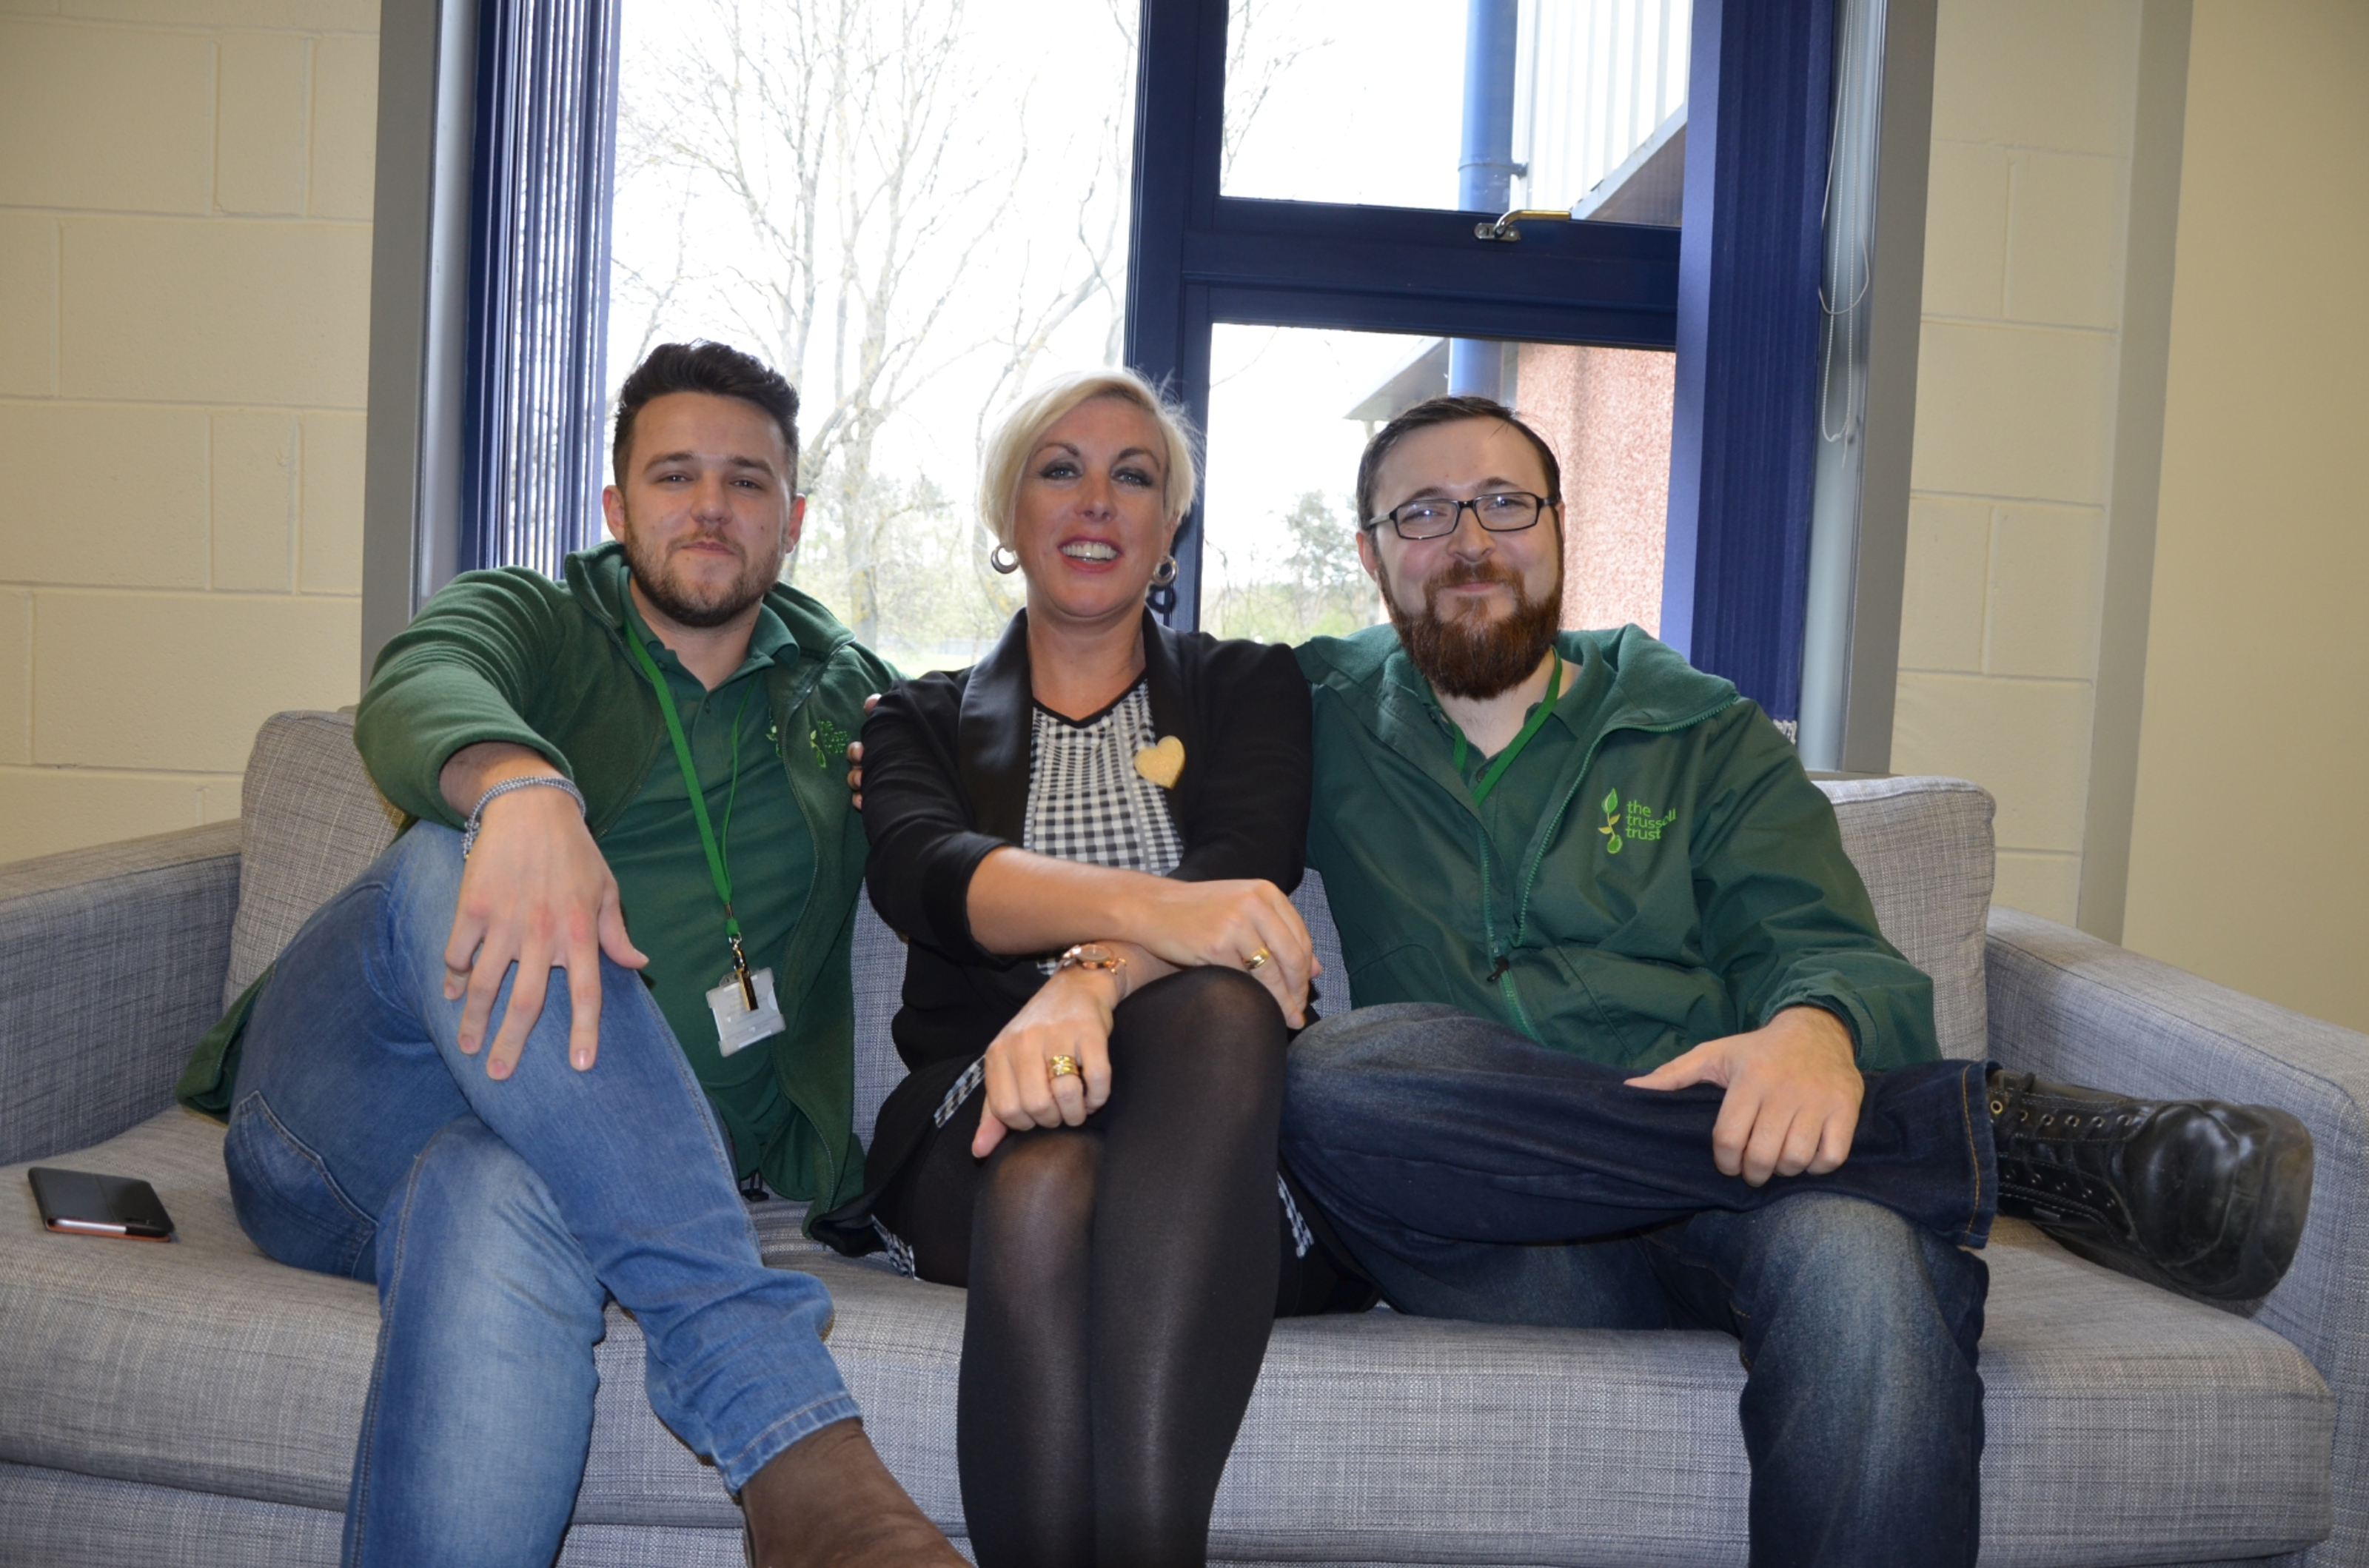 Left, Ewan Gurr of The Trussell Trust. Main picture: Ian Esson, of the Trussell Trust and Joy Watson, of Hillcrest Housing Association, and Ewan Gurr.